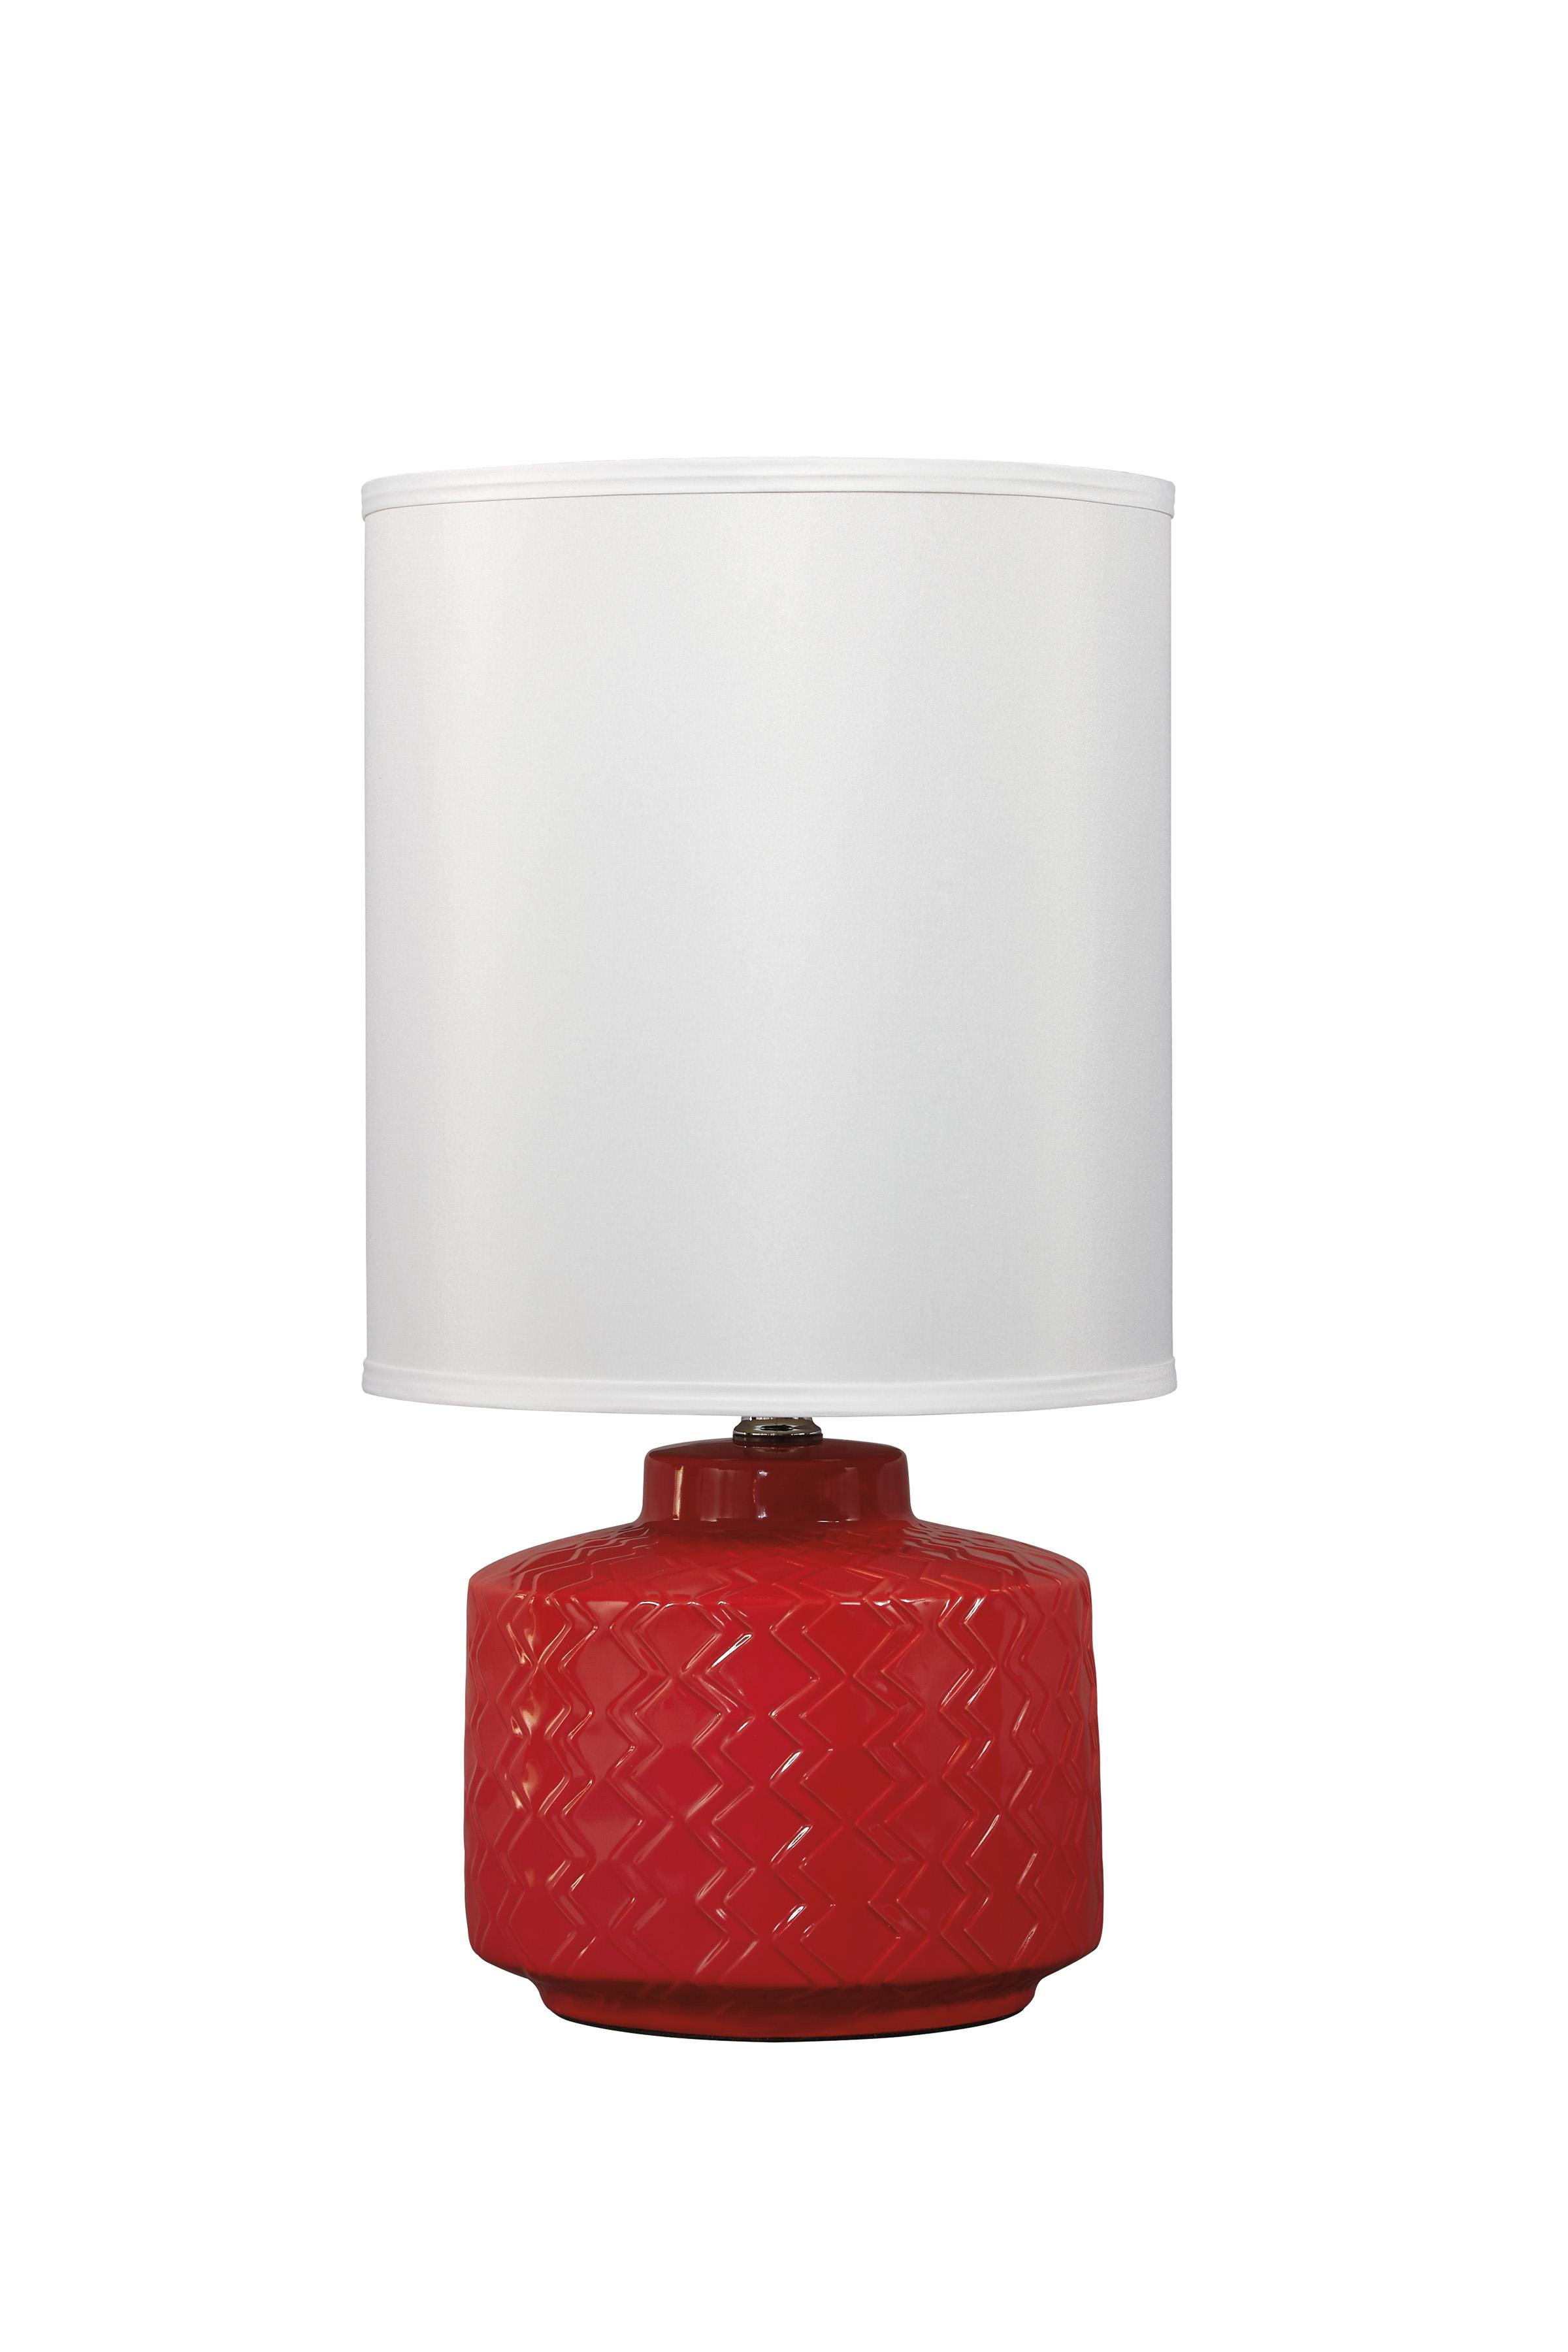 Signature Design by Ashley Lamps - Contemporary Ceramic Table Lamp  - Item Number: L800034